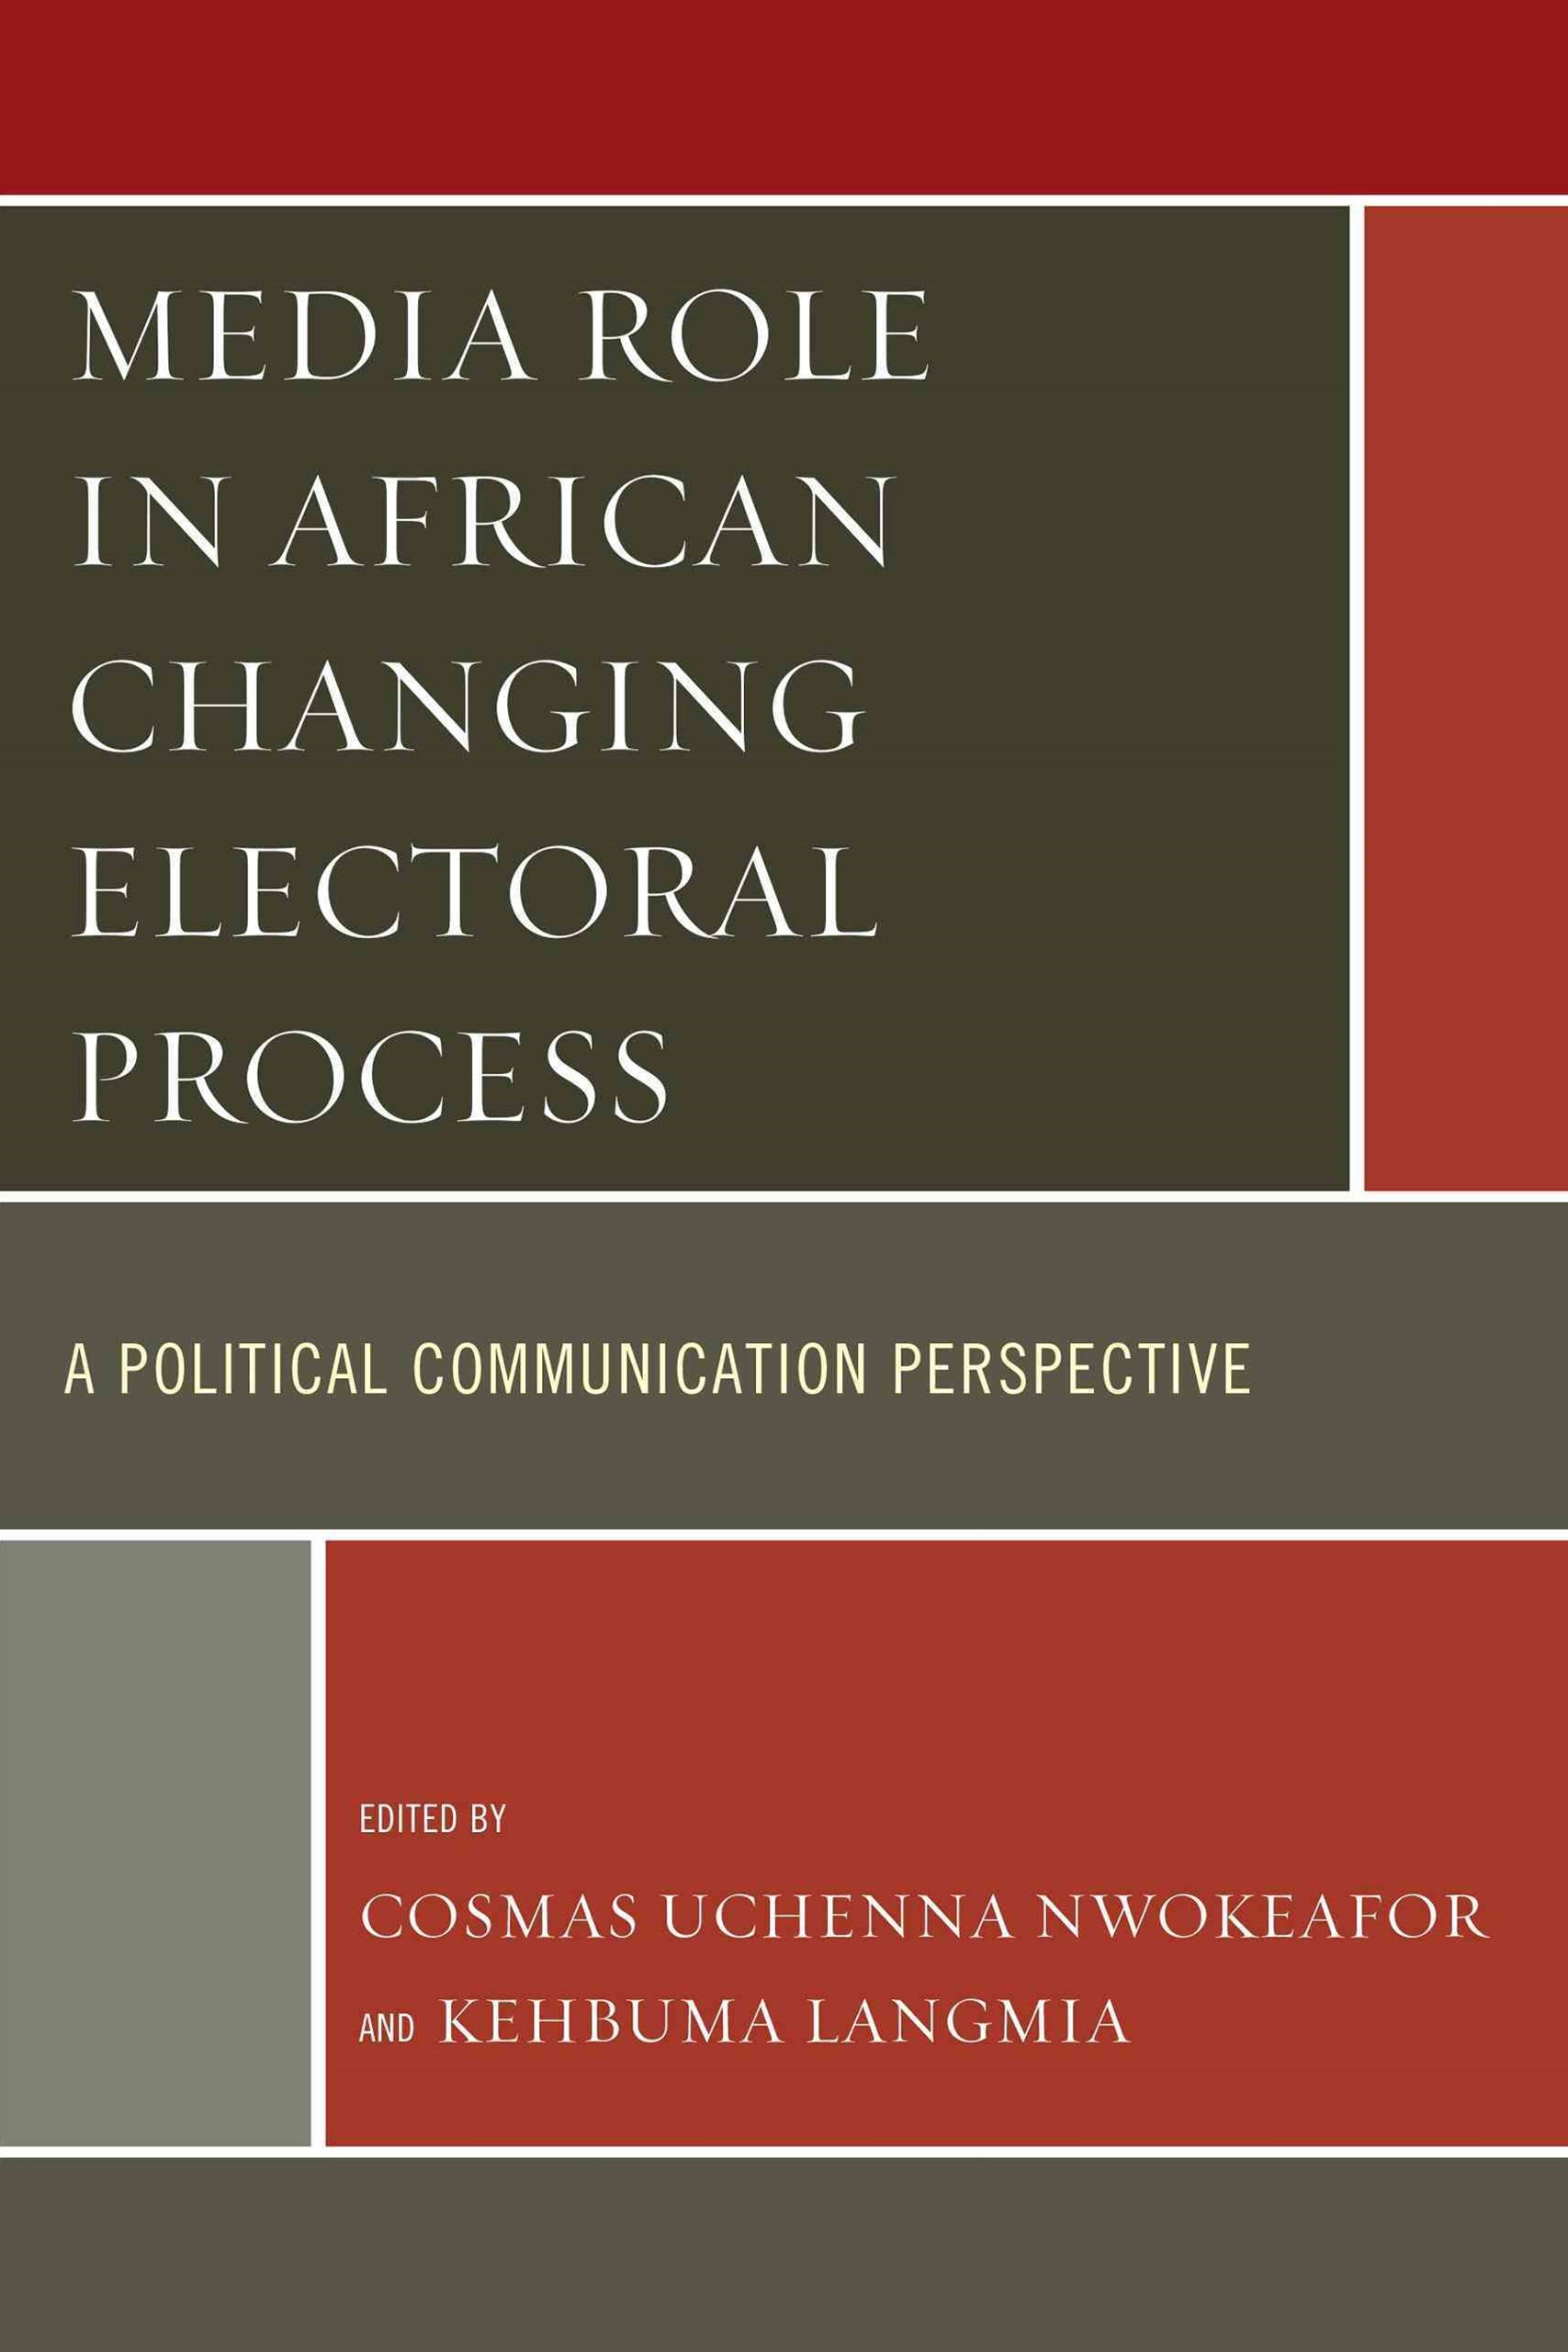 Media Role in African Changing Electoral Process